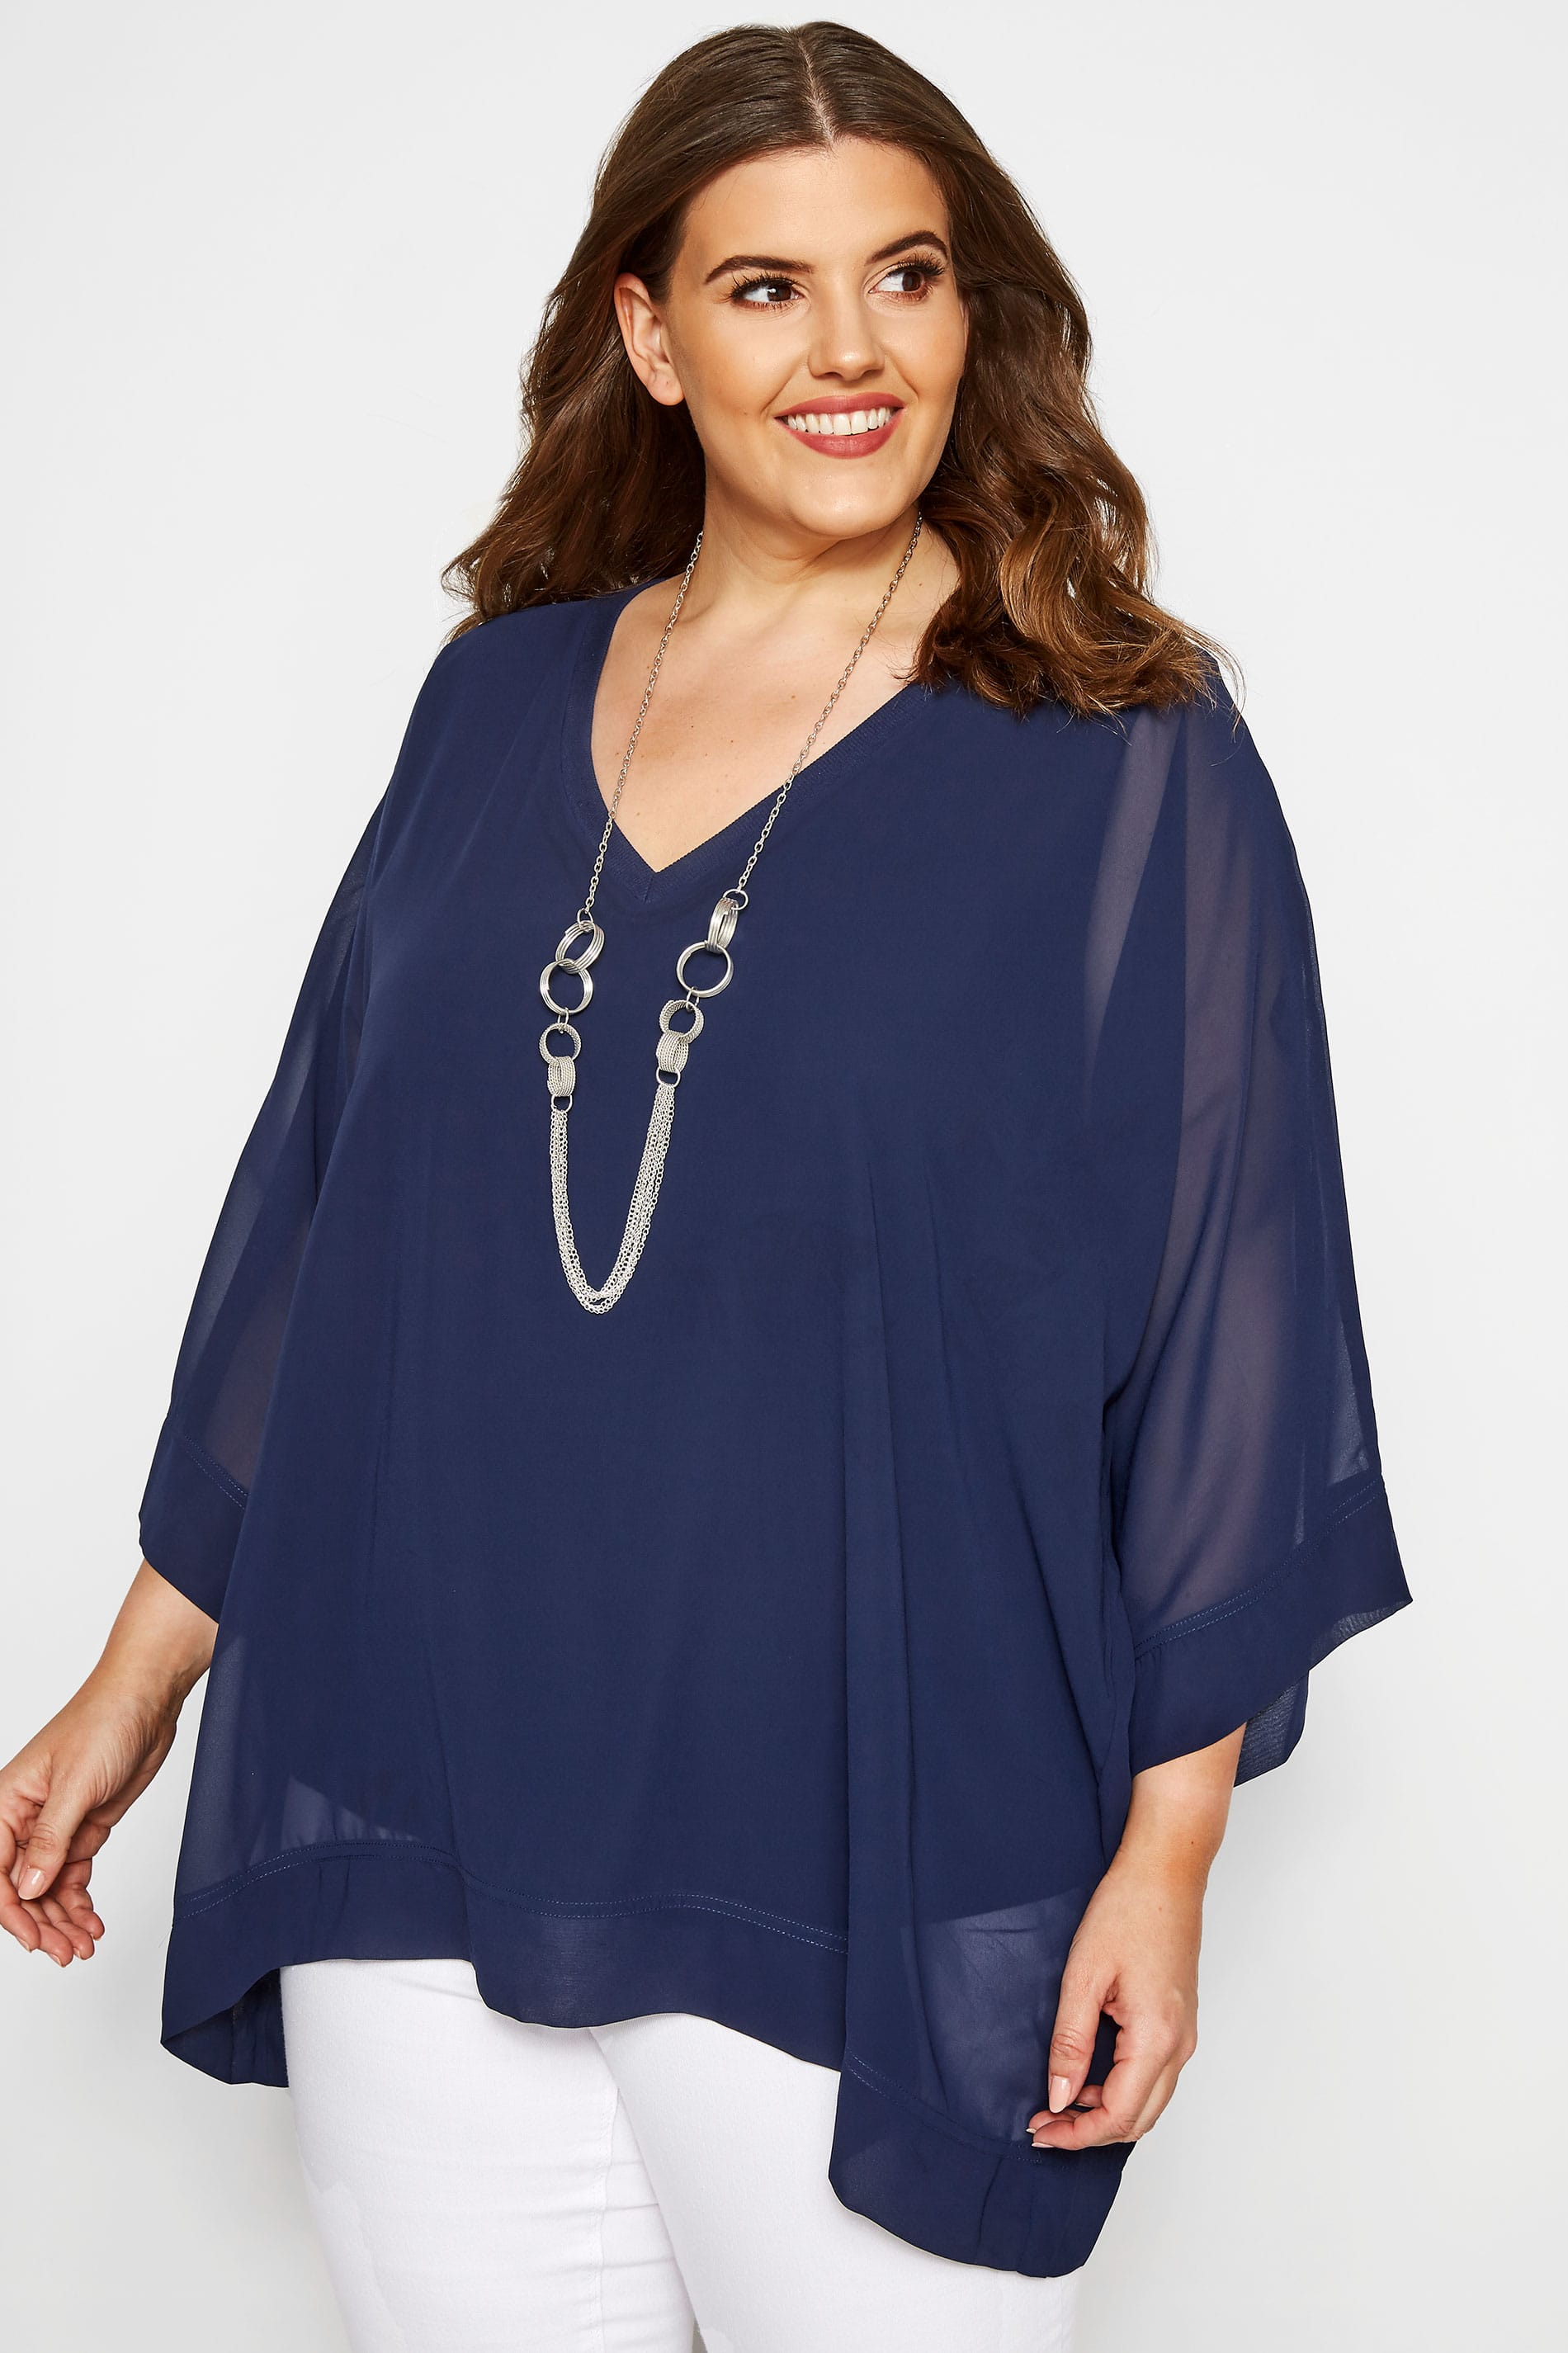 YOURS LONDON Chiffon Top - Navy